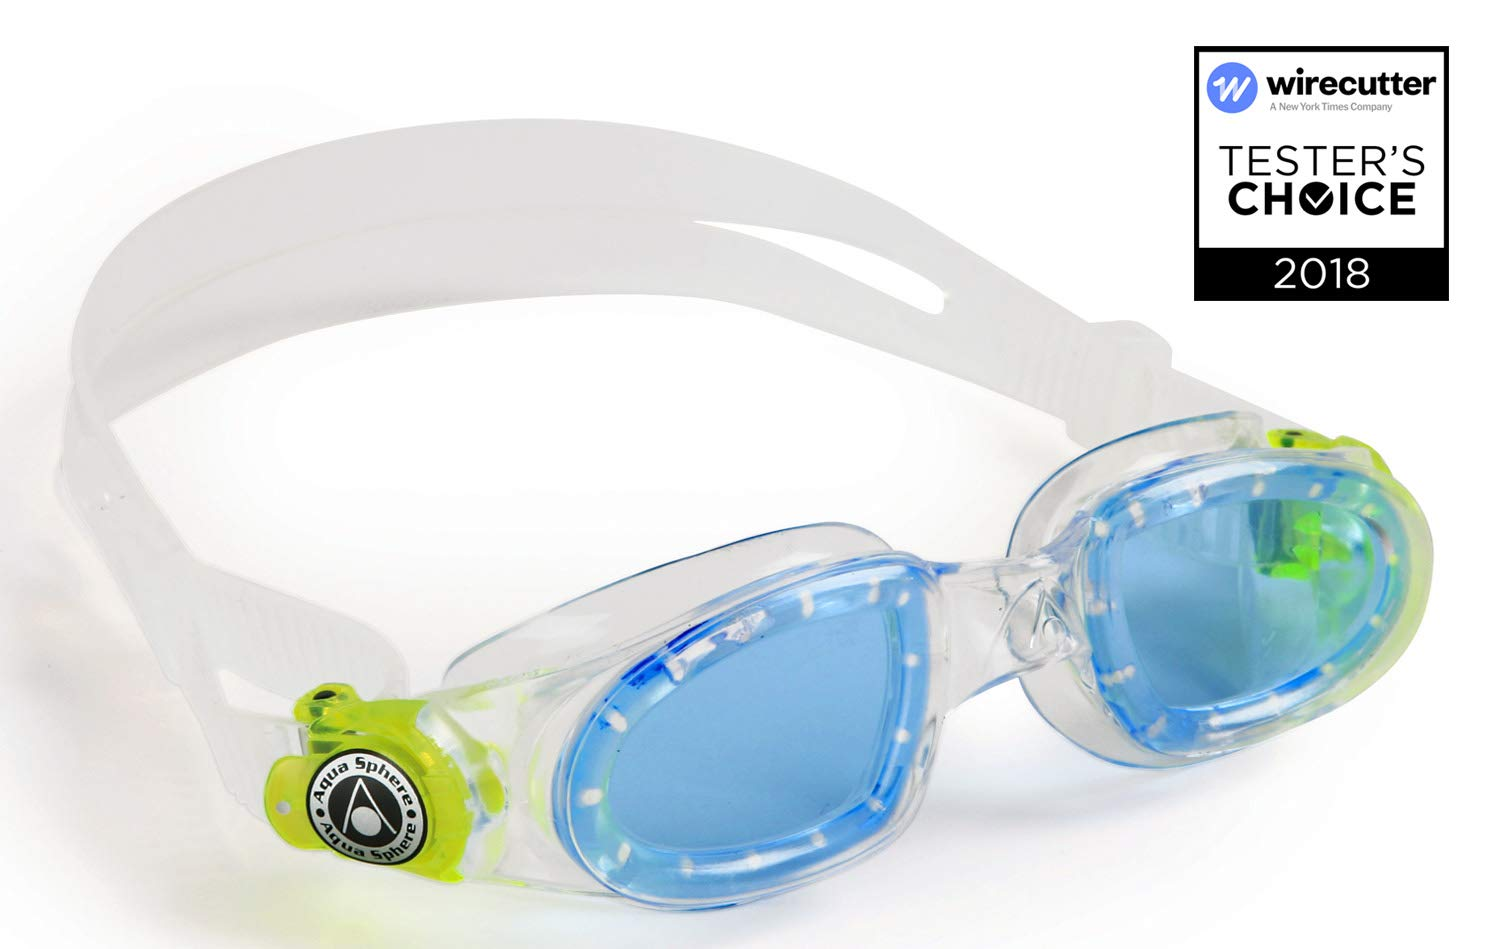 cba81d668a55 Aqua Sphere Moby Kids Swim Goggles w  Blue Tint- Clear Great for Swimming   Amazon.co.uk  Sports   Outdoors